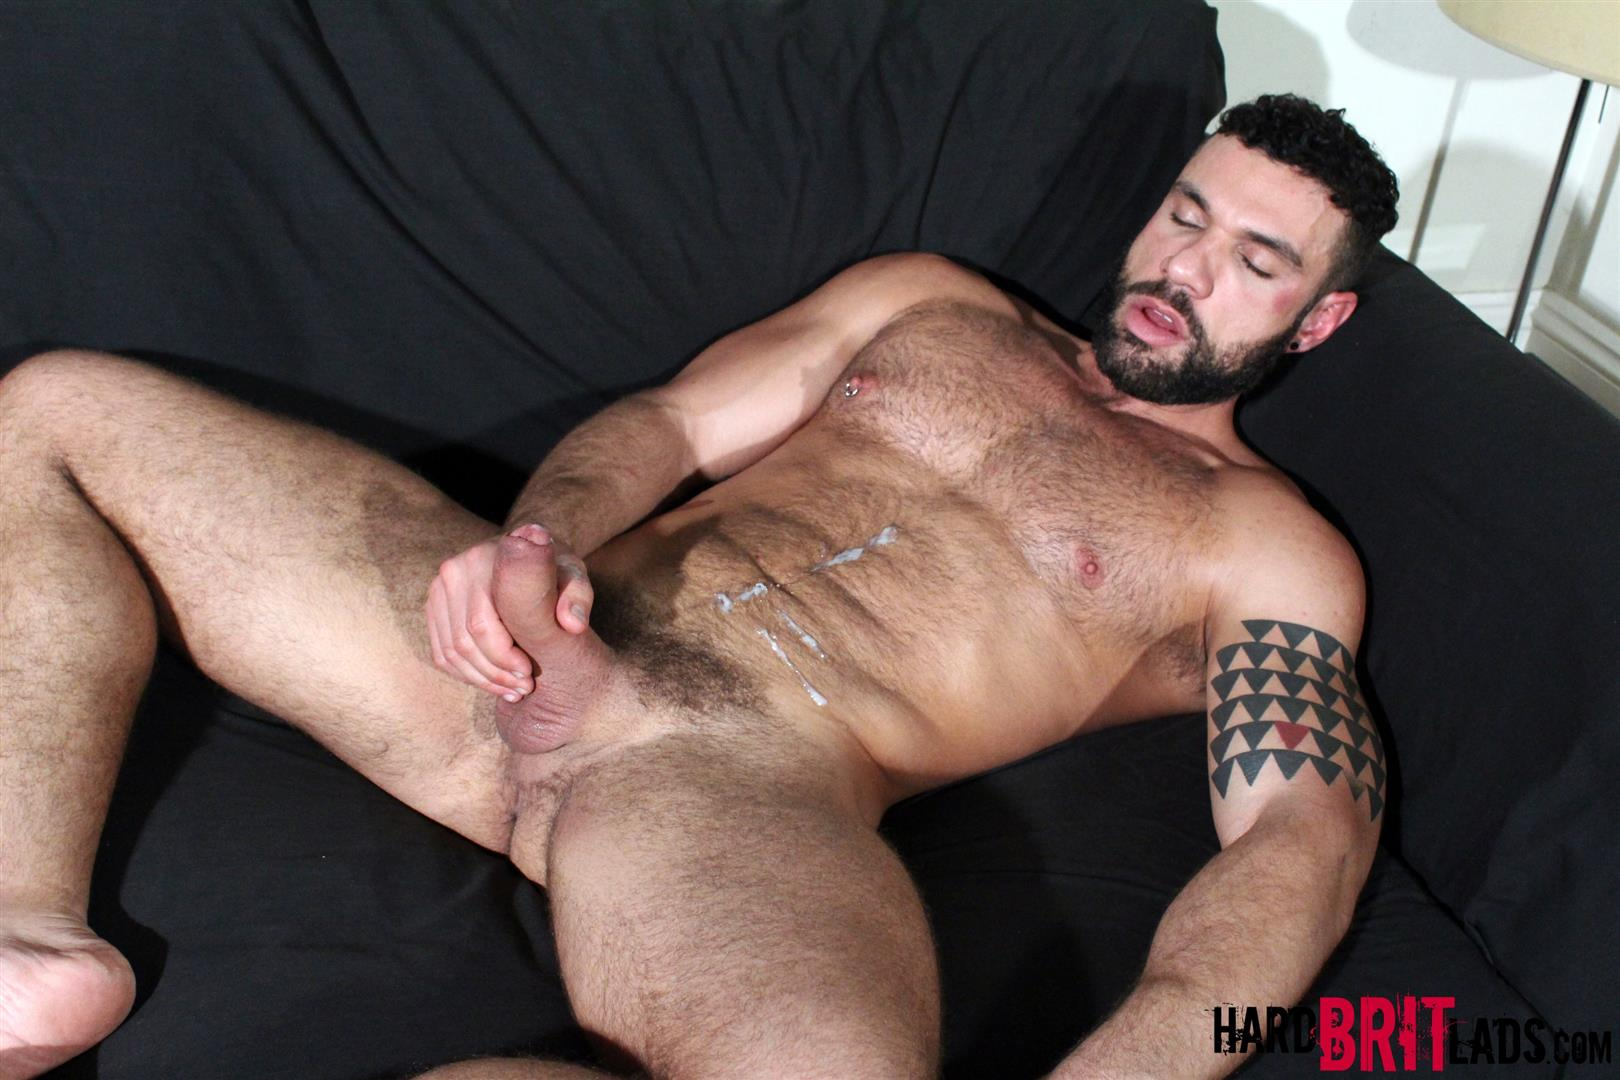 Hard-Brit-Lads-Letterio-Amadeo-Hairy-Rugby-Player-With-A-Big-uncut-Cock-Amateur-Gay-Porn-16 Beefy Hairy Muscle Rugby Player Playing With His Big Uncut Cock